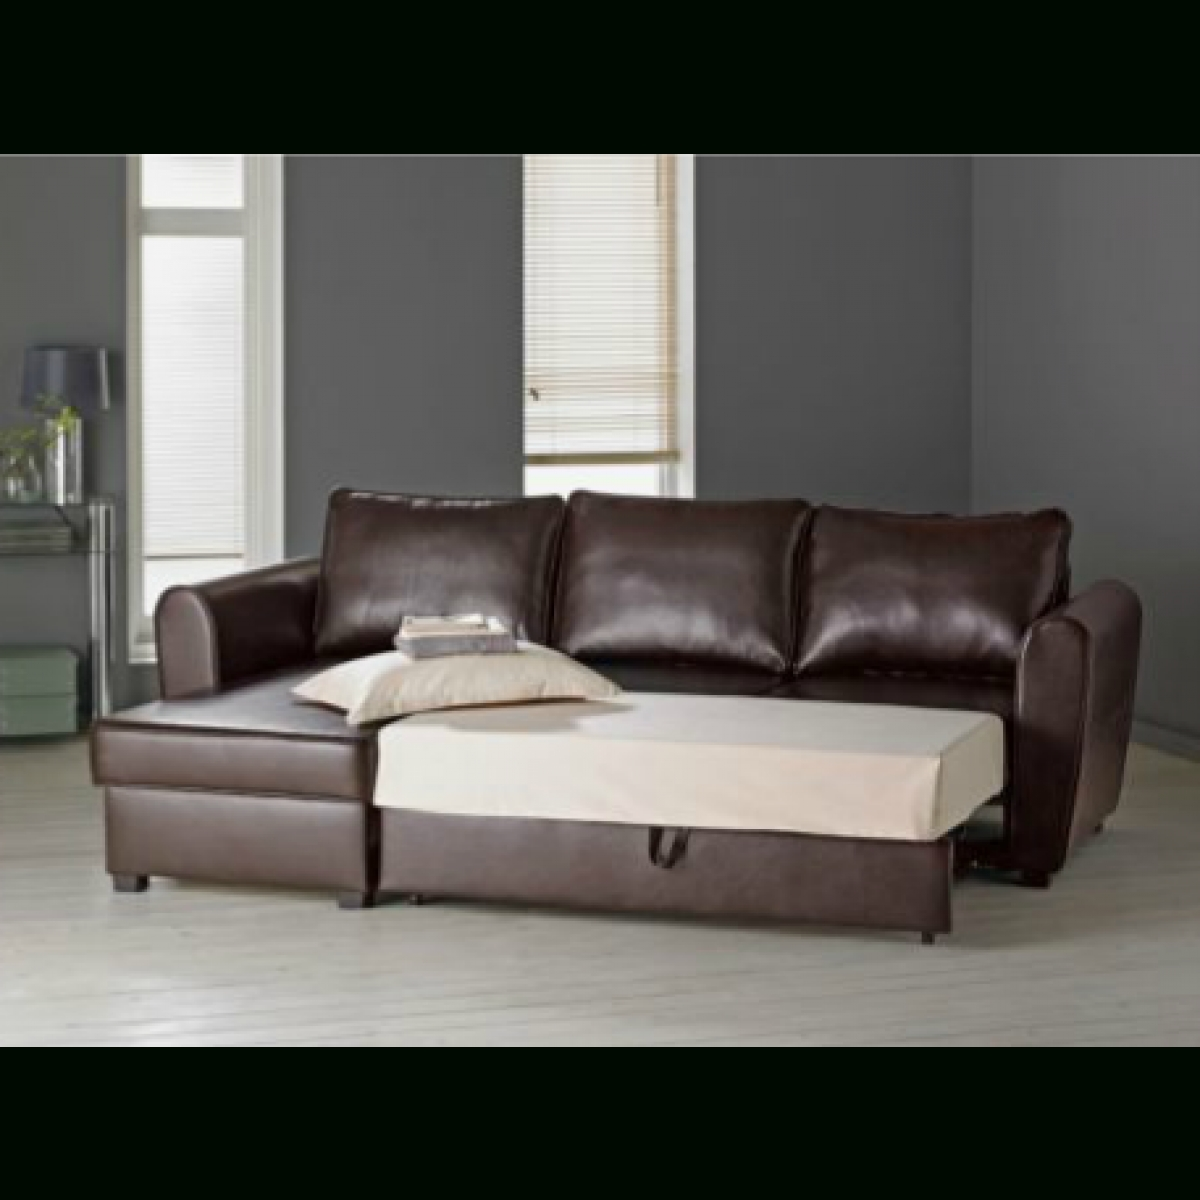 Most Recent Leather Sofas With Storage With Regard To Siena Leather Effect Corner Sofa Bed With Storage  Chocolate (View 6 of 15)